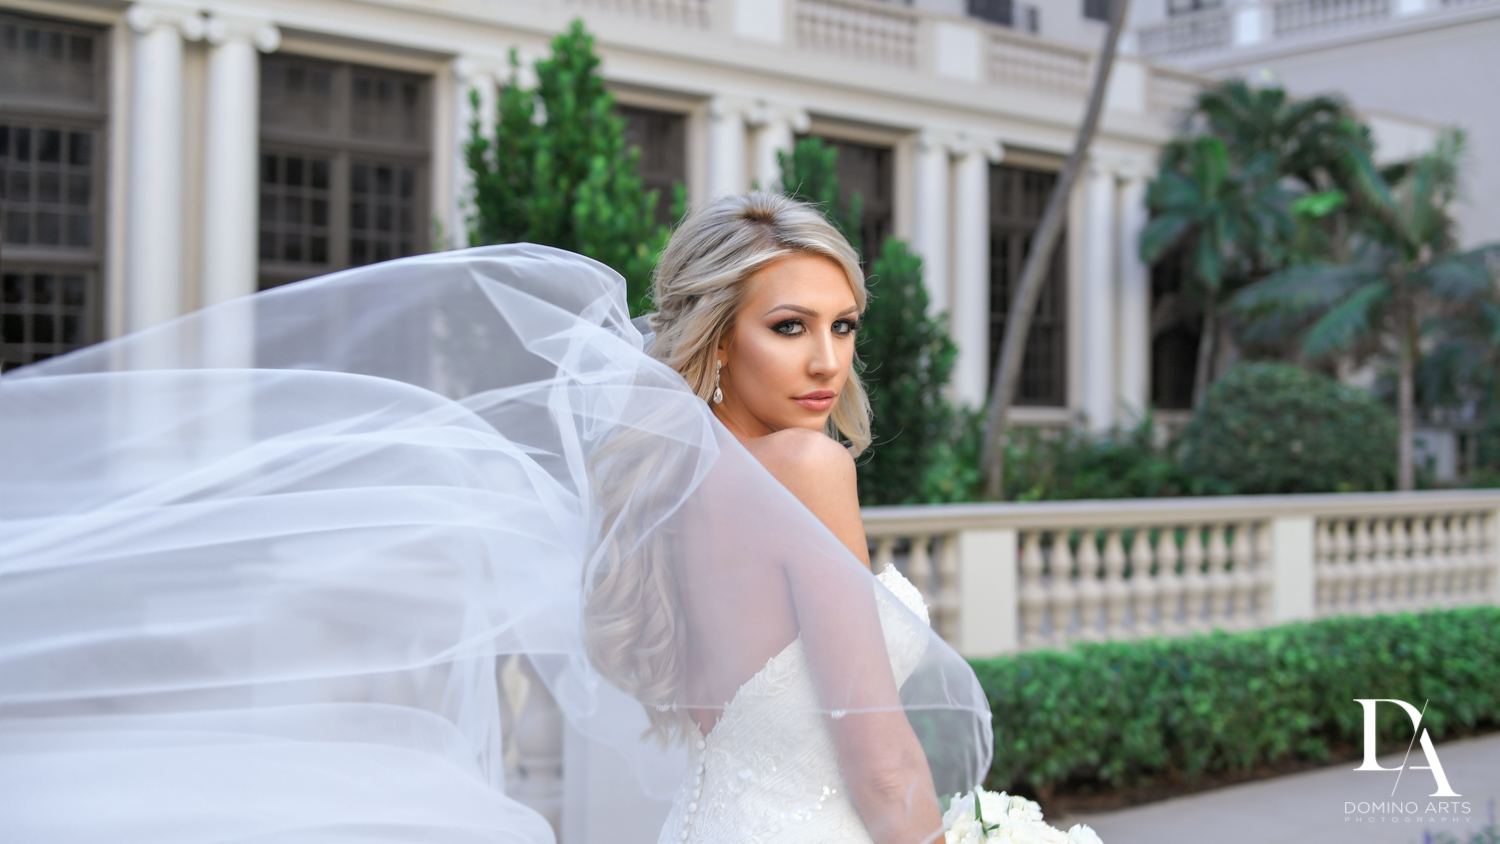 sexy bride at Extravagant Wedding at The Breakers Palm Beach by Domino Arts Photography